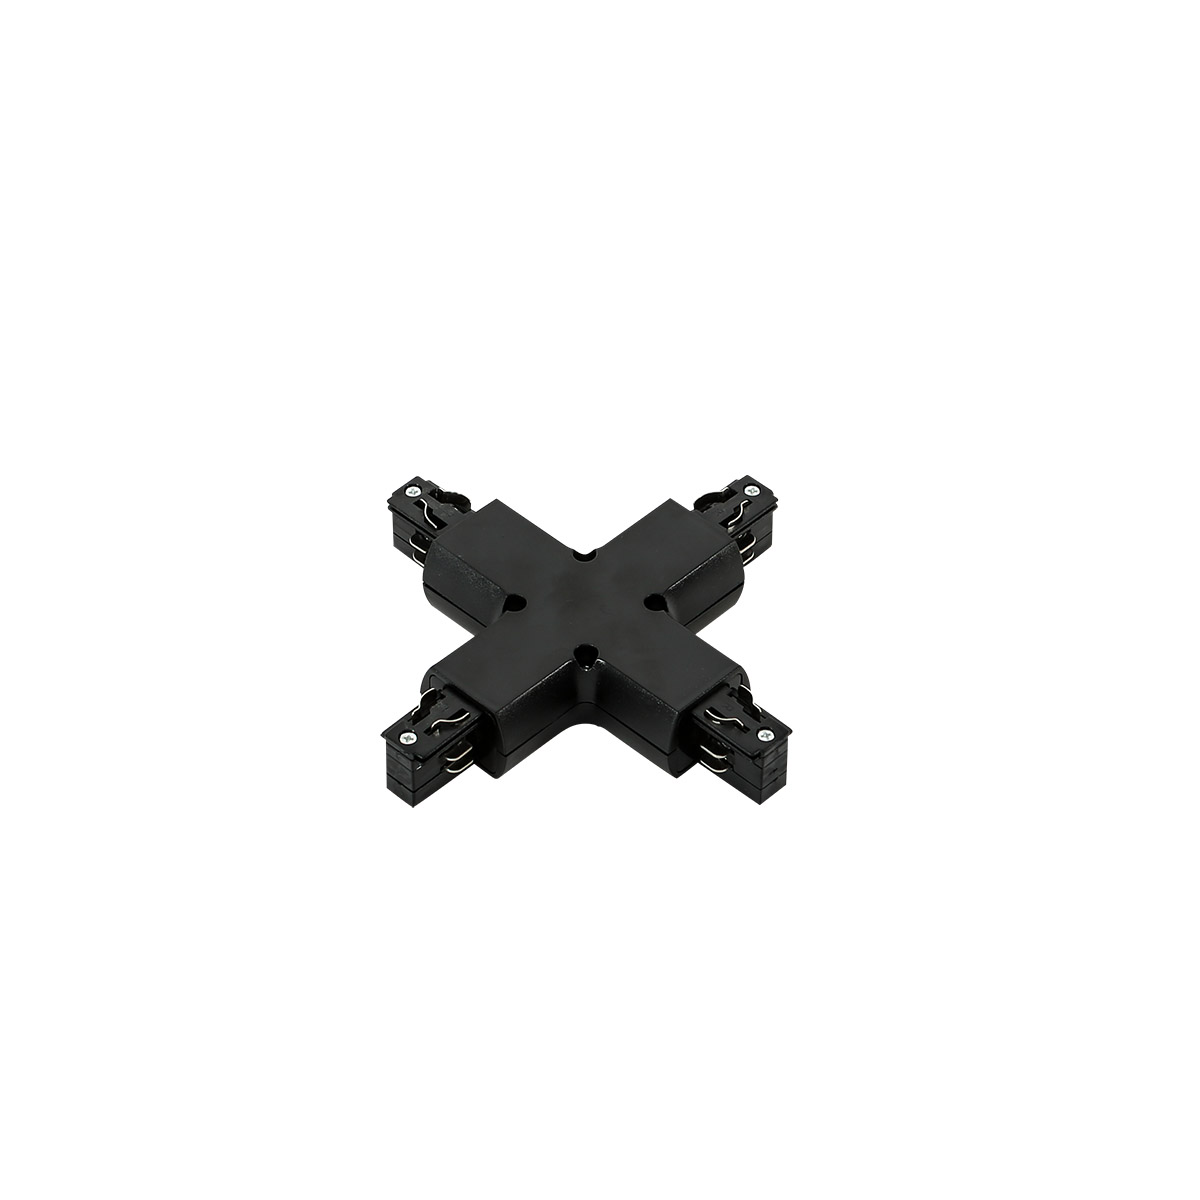 TR-PLUS-JOINT-BL 4 phase track - cross joint - black